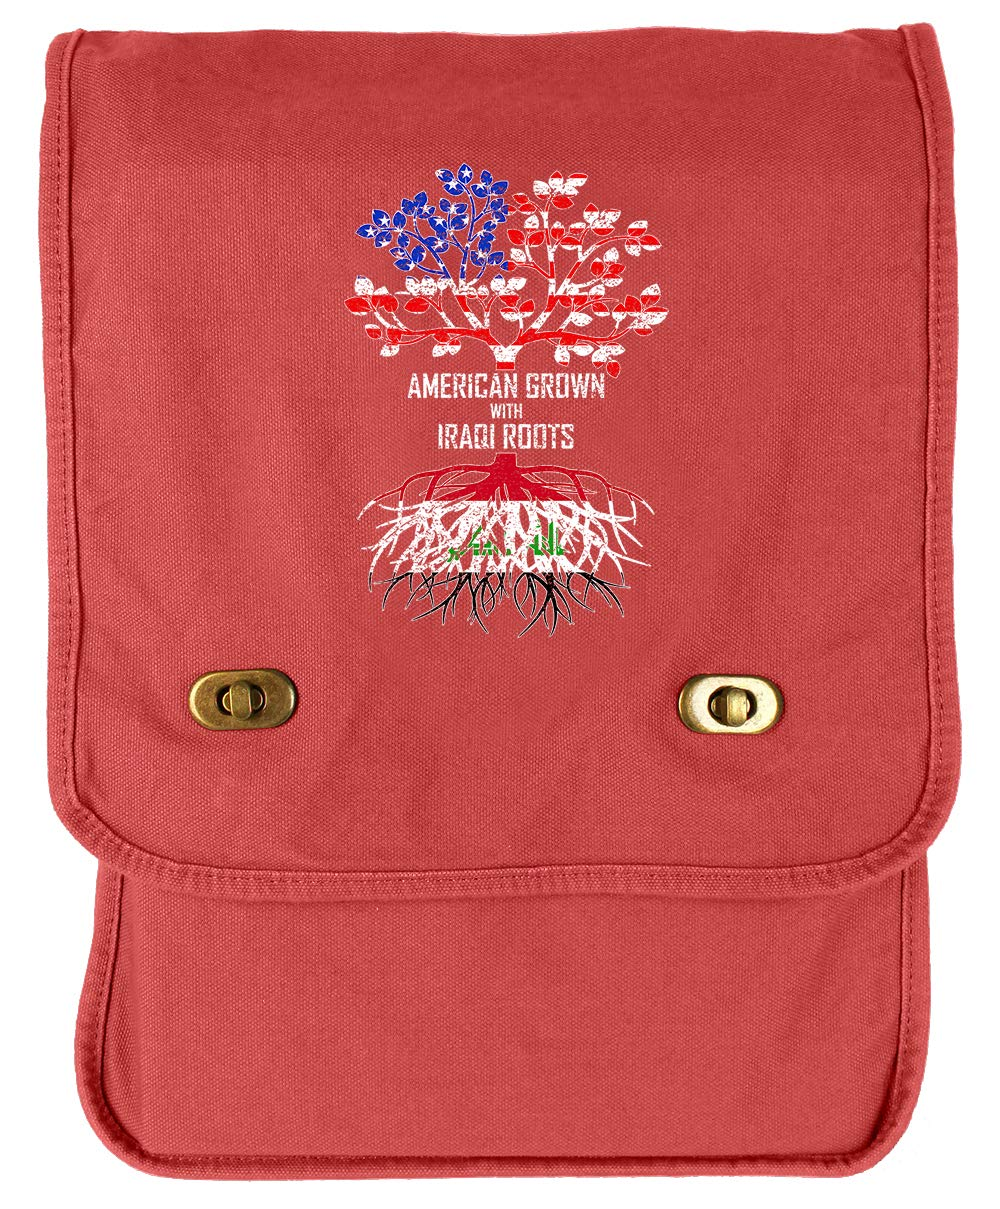 Tenacitee American Grown with Iraqi Roots Navy Brushed Canvas Messenger Bag